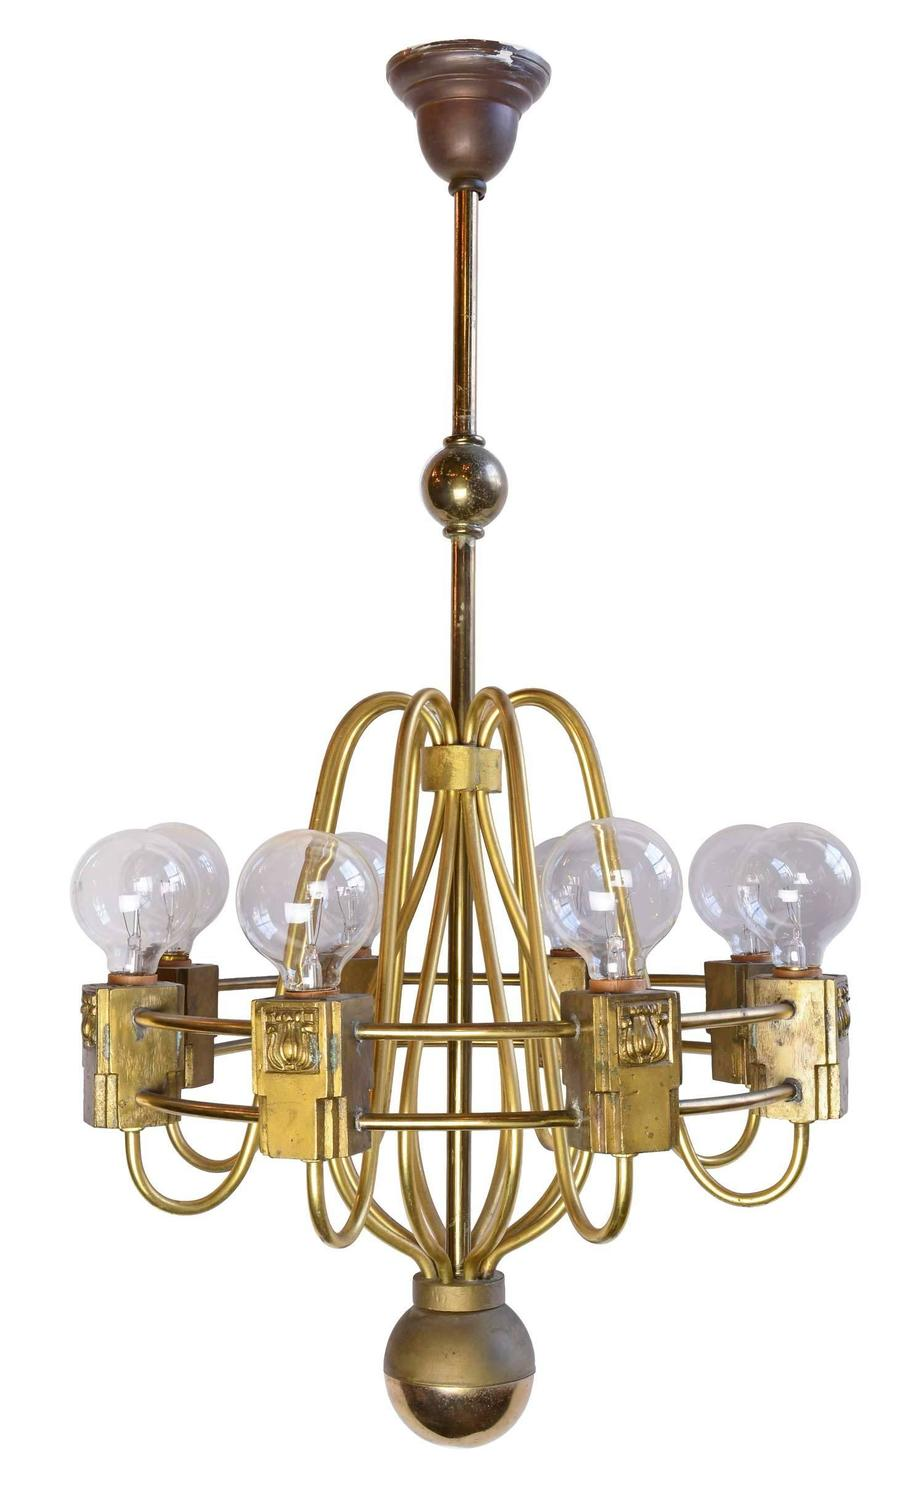 Midcentury cast brass chandelier circa 1940 for sale at 1stdibs - Circa lighting chandeliers ...